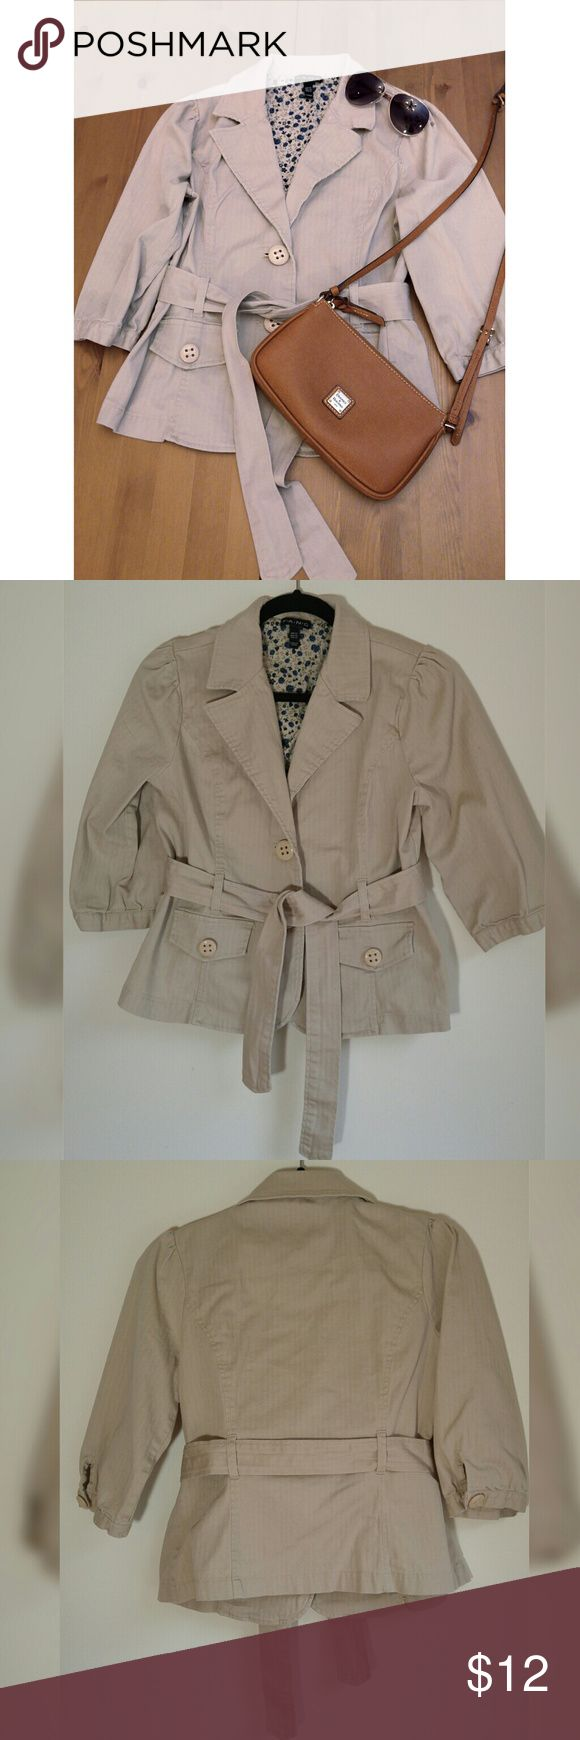 ✨Belted Light Khaki Blazer Belted light Khaki blazer with floral print interior. The material is a little stretchy. 97% cotton 3% spandex exterior, 100% cotton liner. Color is most like pic 2 and 3 in the natural lighting. Fits as Juniors XL or womens L  ✨Great condition, no pulls, flaws that I can see  ✨✨ Check out my other listings to get a bundle discount! I will answer any questions promptly ☺☺ Jackets & Coats Blazers